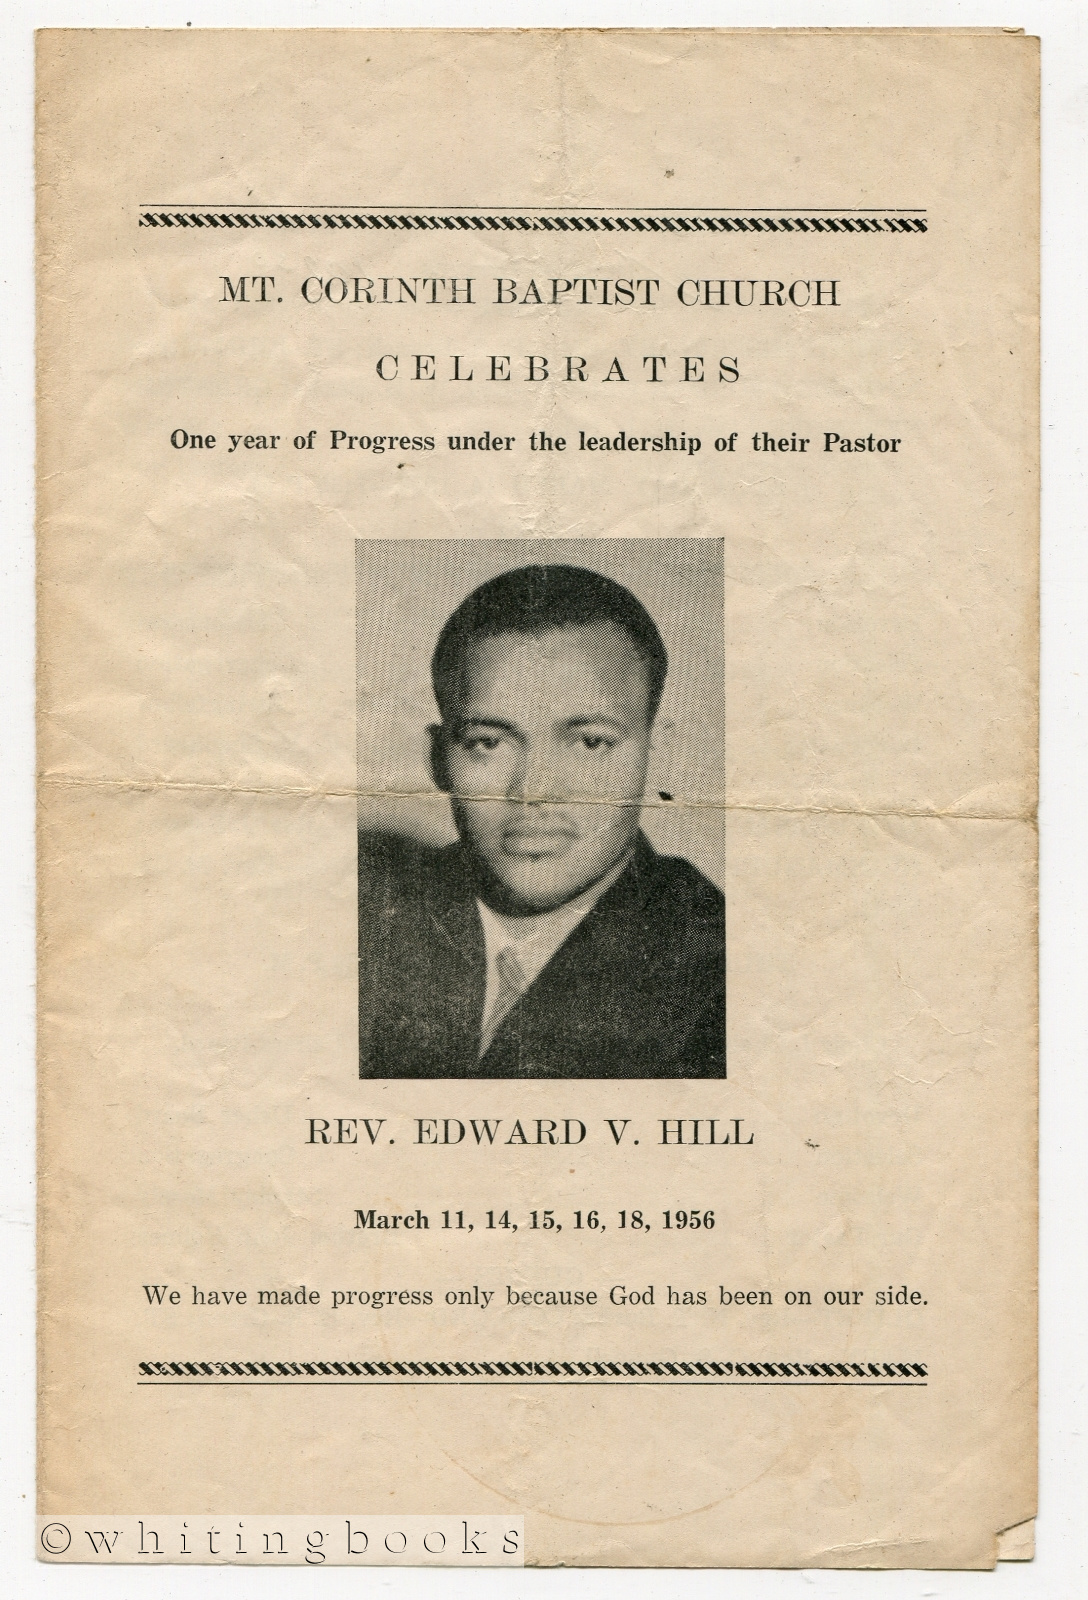 Image for Rev. Edward V. Hill Celebration Service [Program] at Mt. Corinth Baptist Church [Houston, Texas] - March 11, 14, 15, 16, 18, 1956